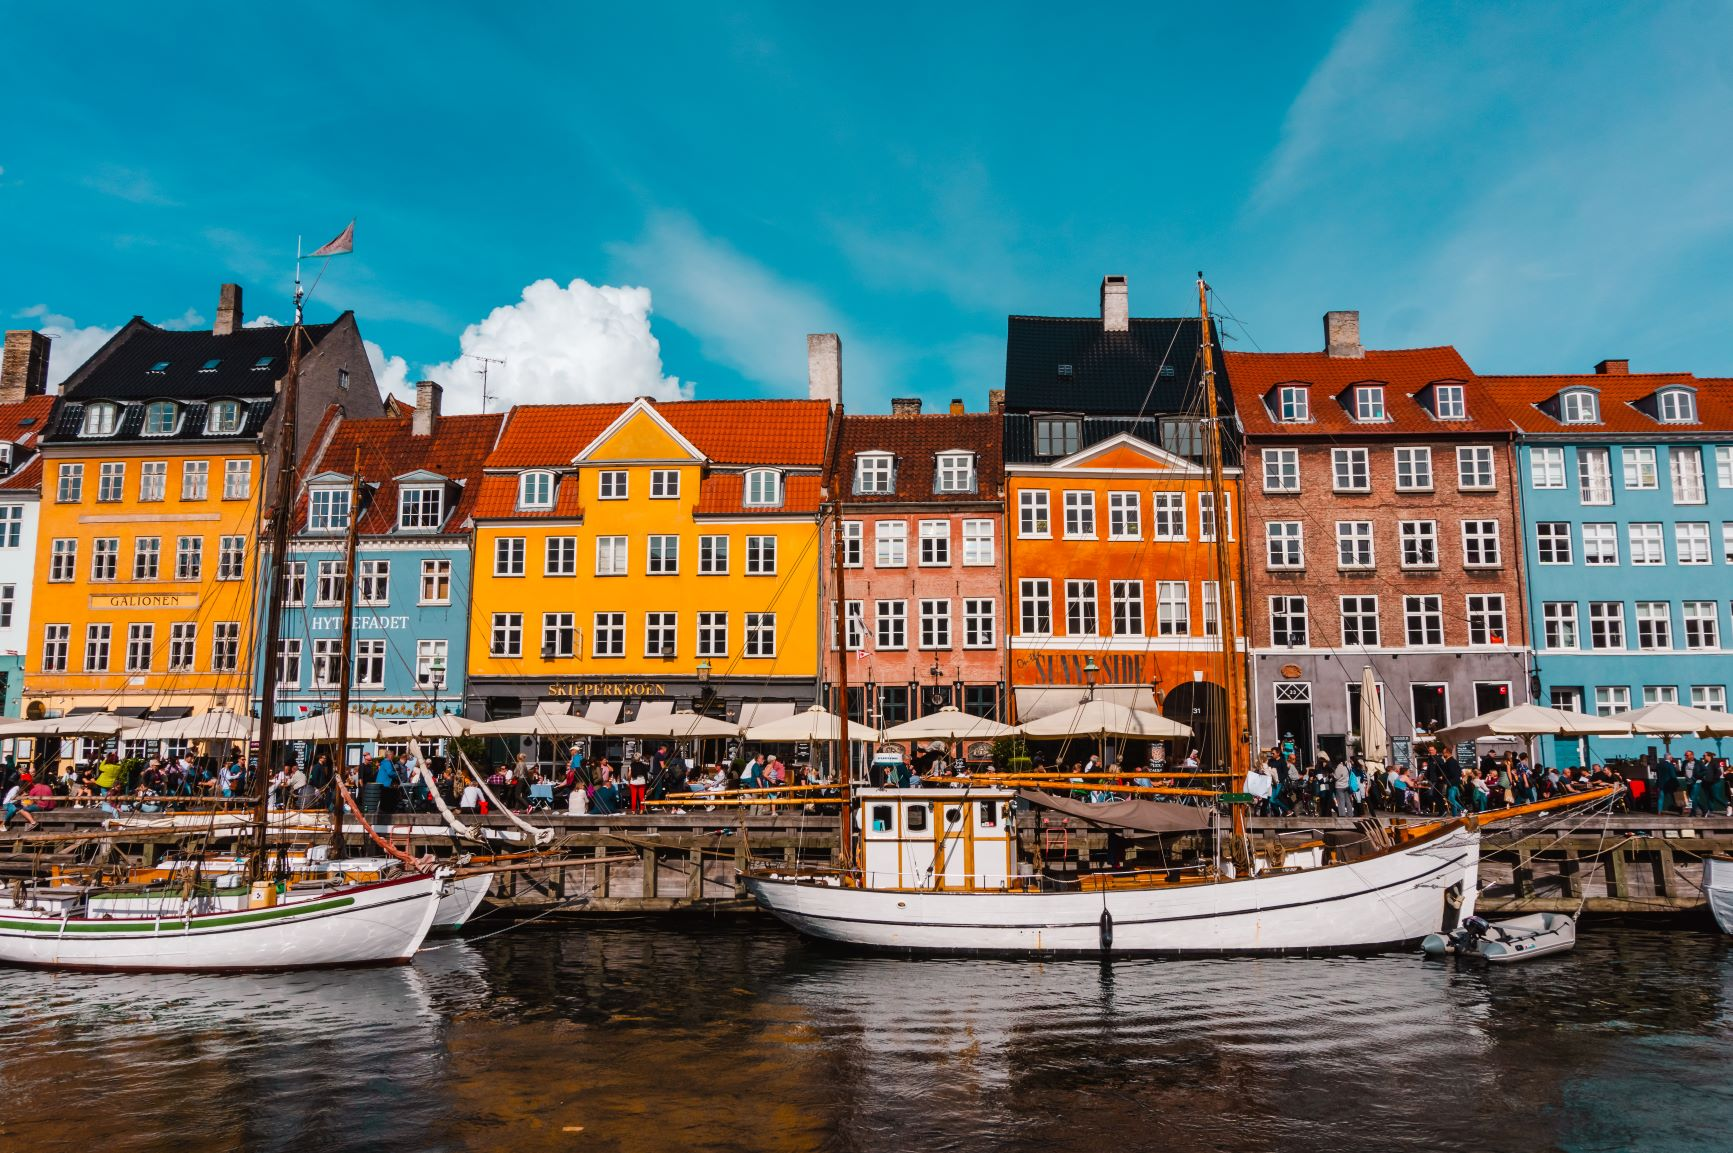 The colourful waterfront buildings of Nyhavn in Copenhagen, one of the best solo travel destinations in Europe.